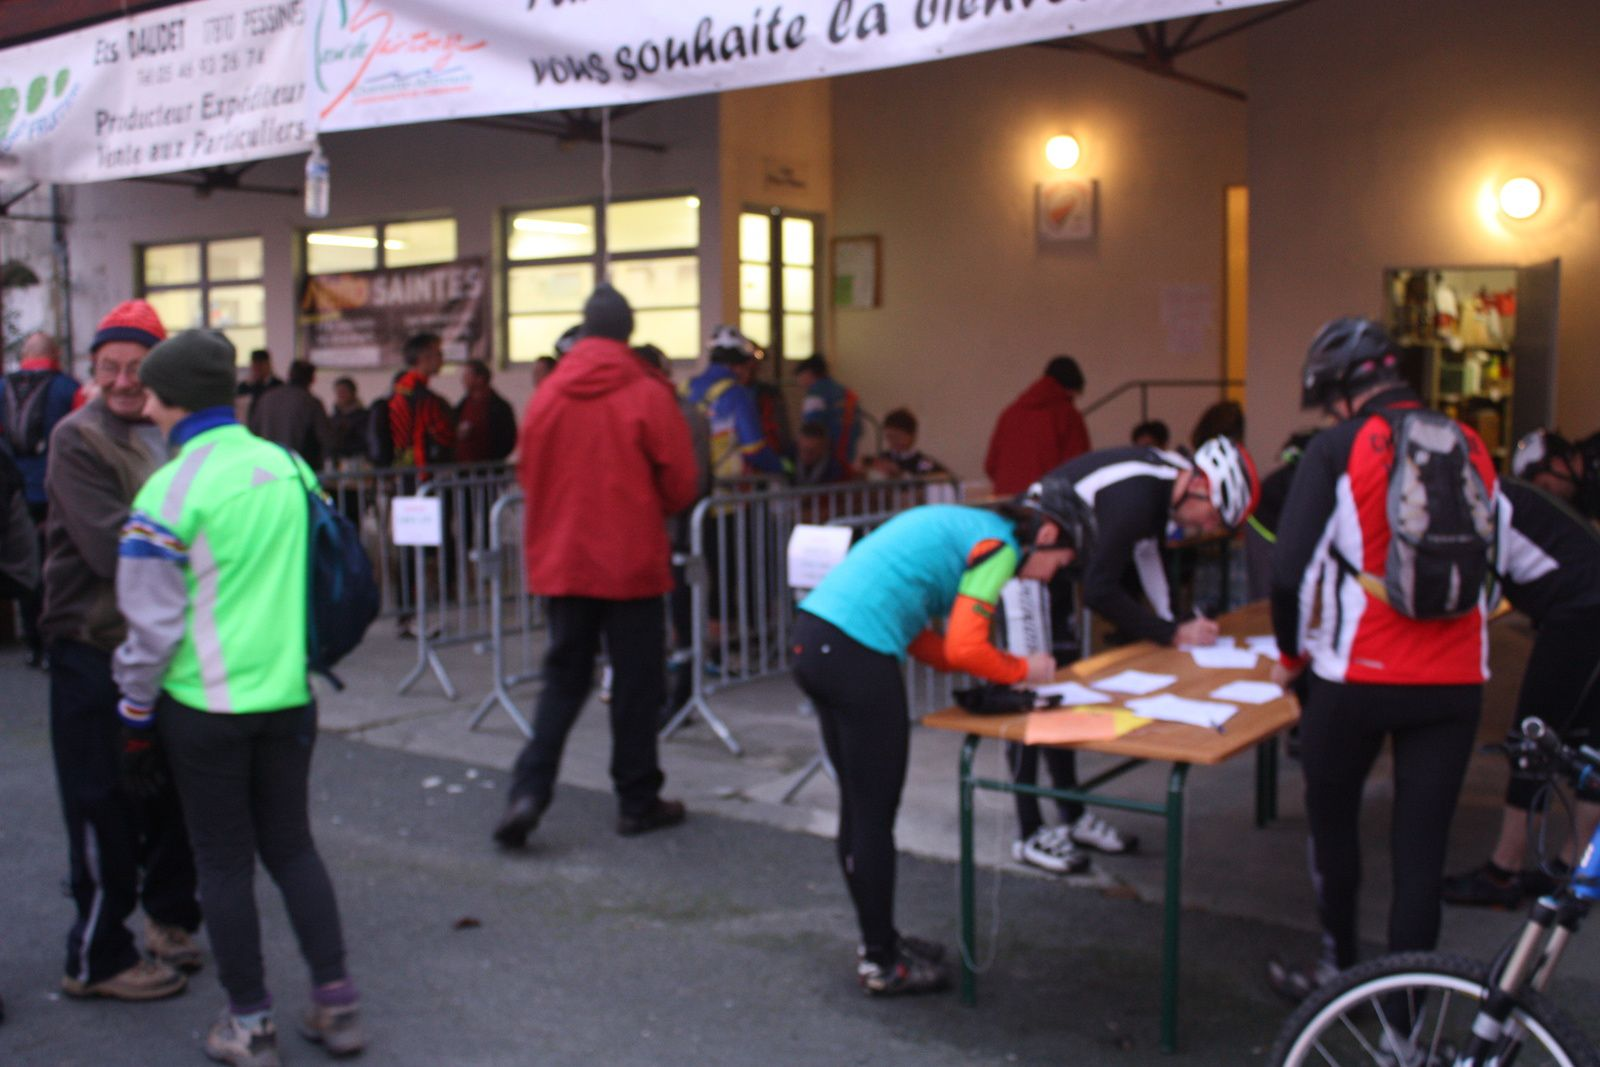 Les  inscriptions  au  local  du  club